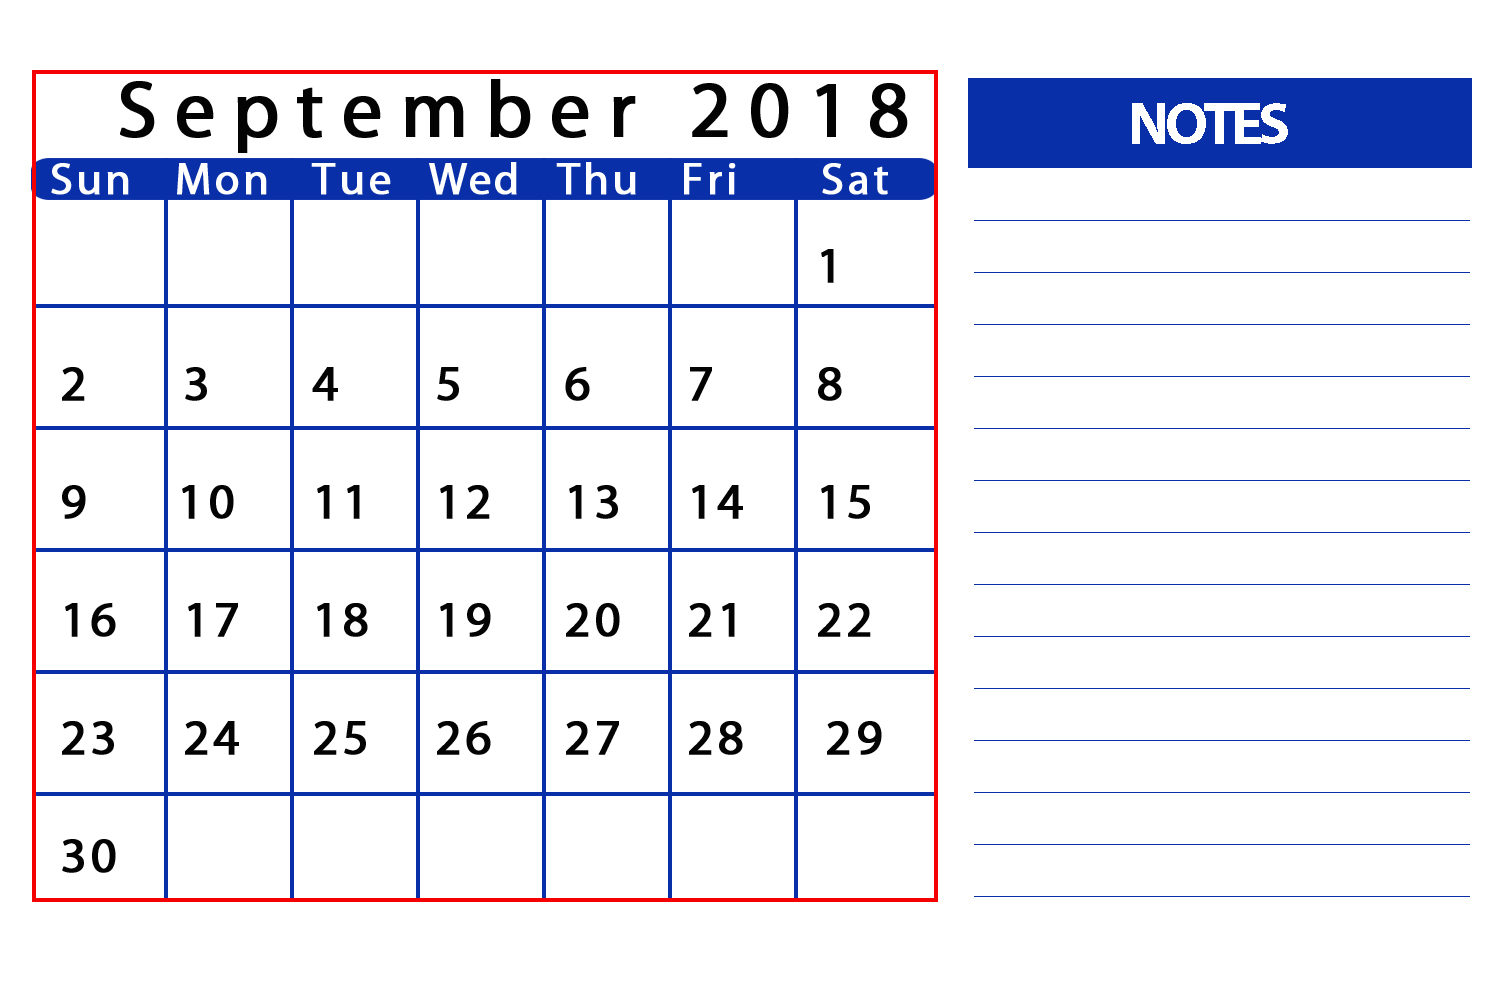 September 2018 Notes Making Calendar